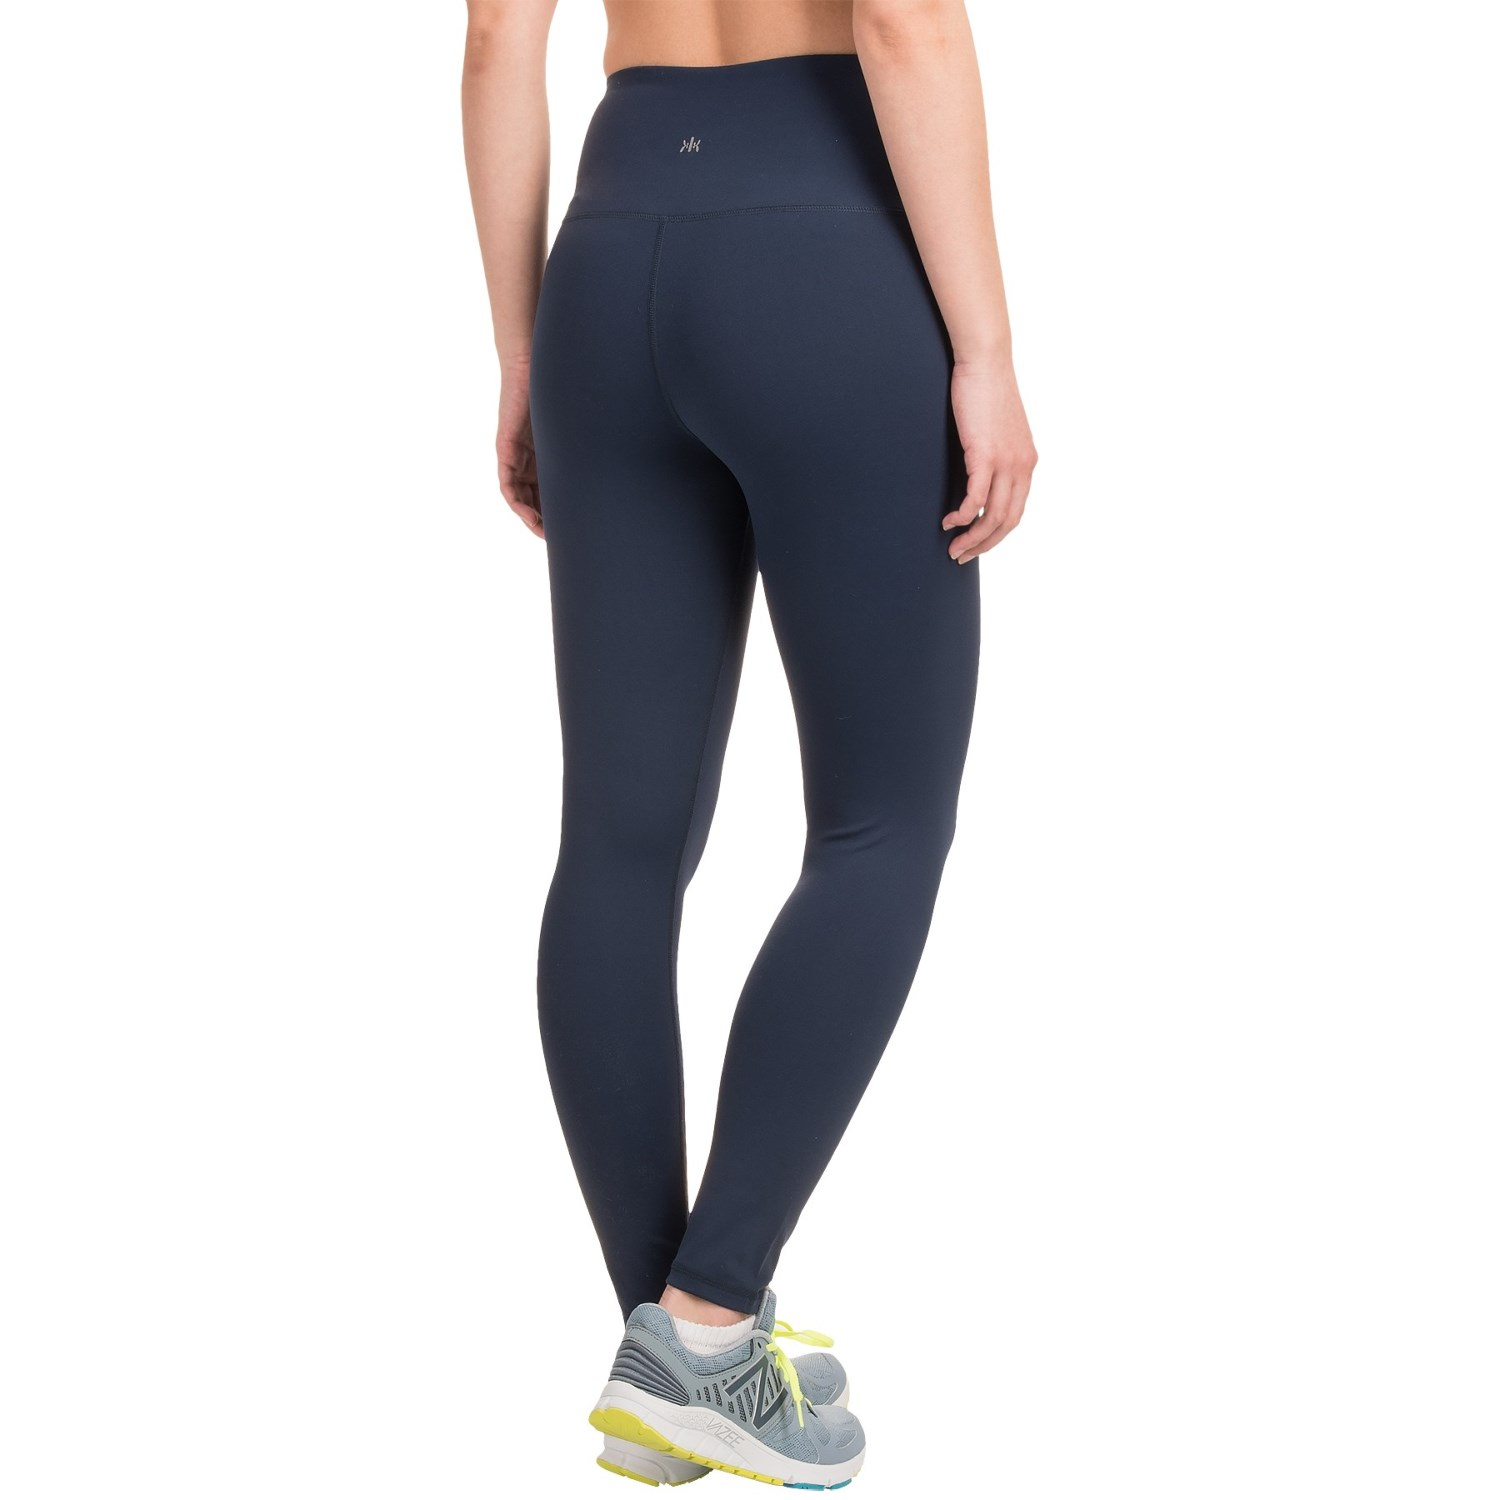 e6c962856f10f Kyodan High-Waisted Leggings (For Women) - Save 42%